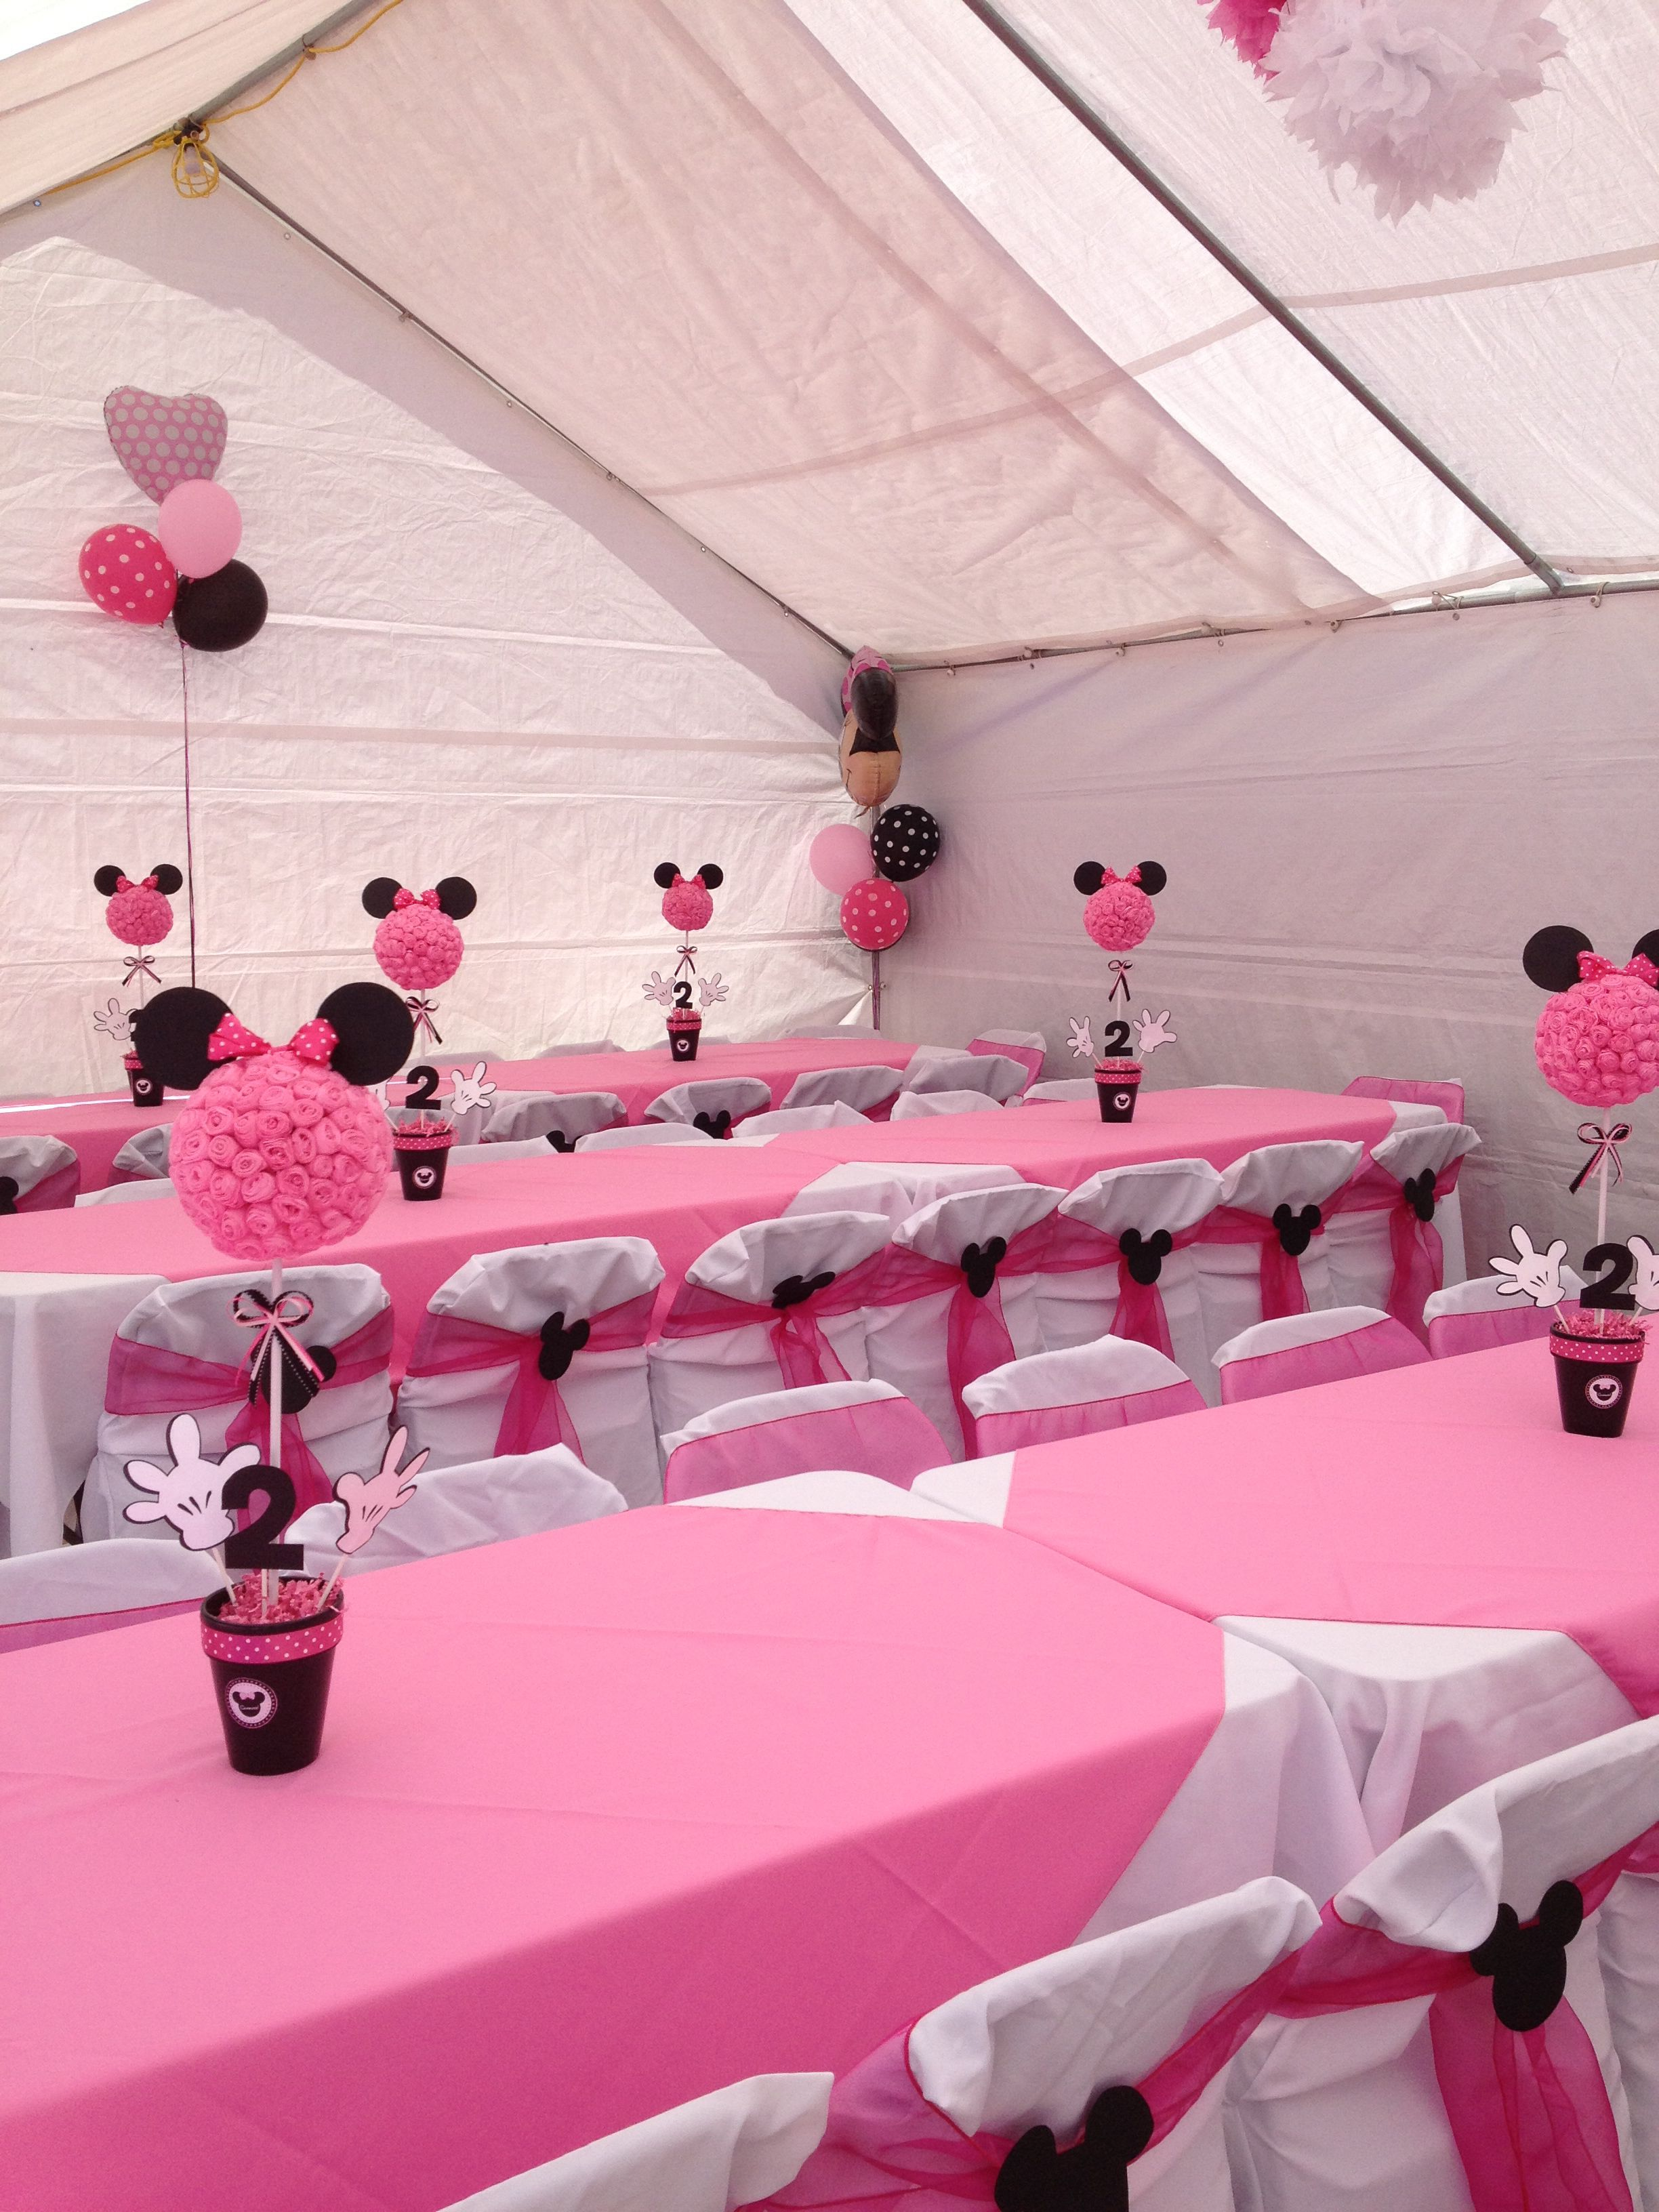 Pin By Anais Linant On Minnie Mouse Minnie Mouse Theme Party Minnie Birthday Party Minnie Mouse Birthday Party